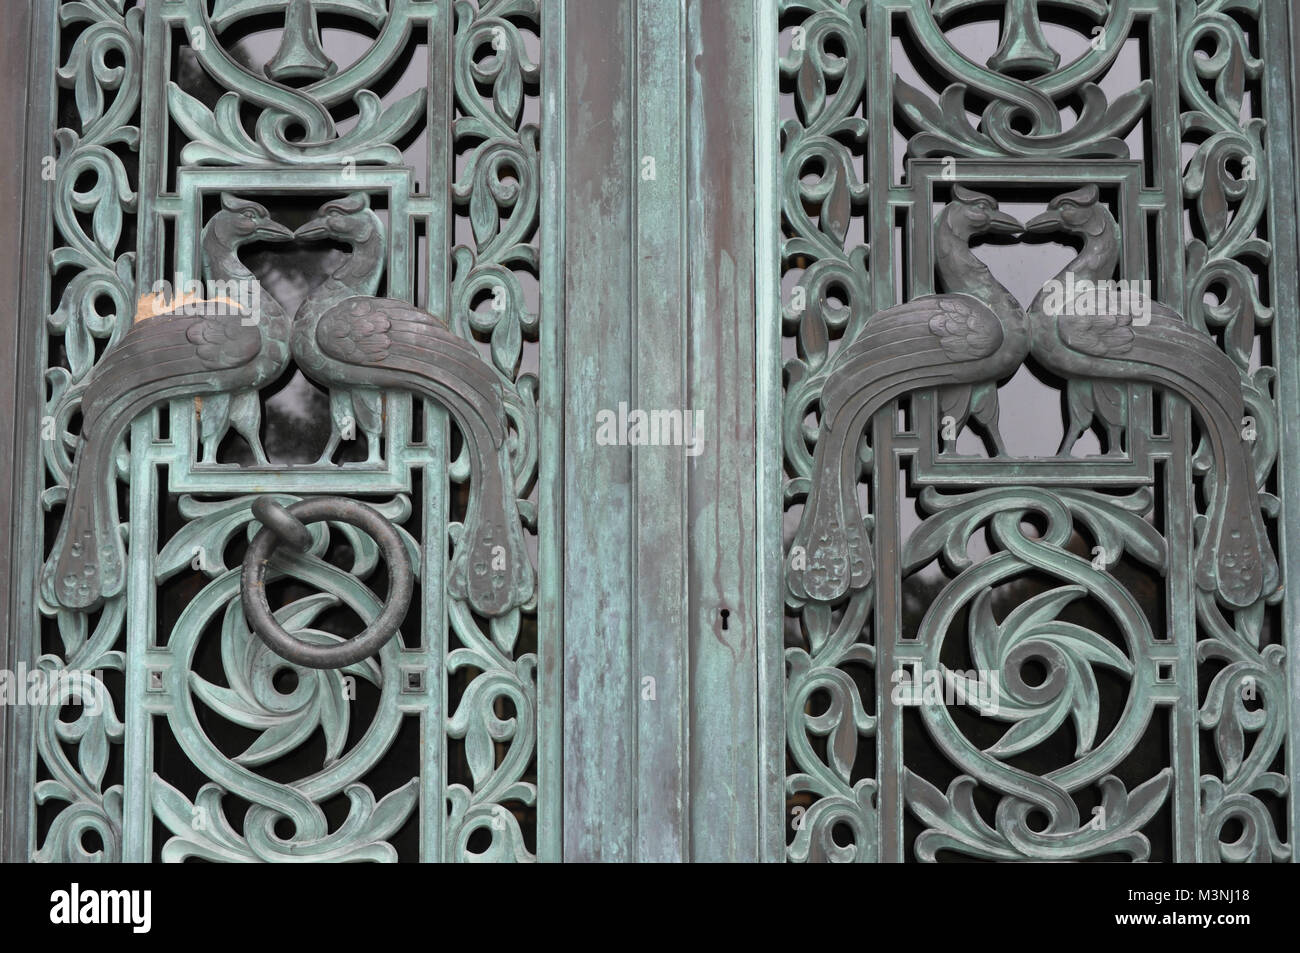 Abandoned Mausoleum Doors in a Cemetery & Abandoned Mausoleum Doors in a Cemetery Stock Photo Royalty Free ...